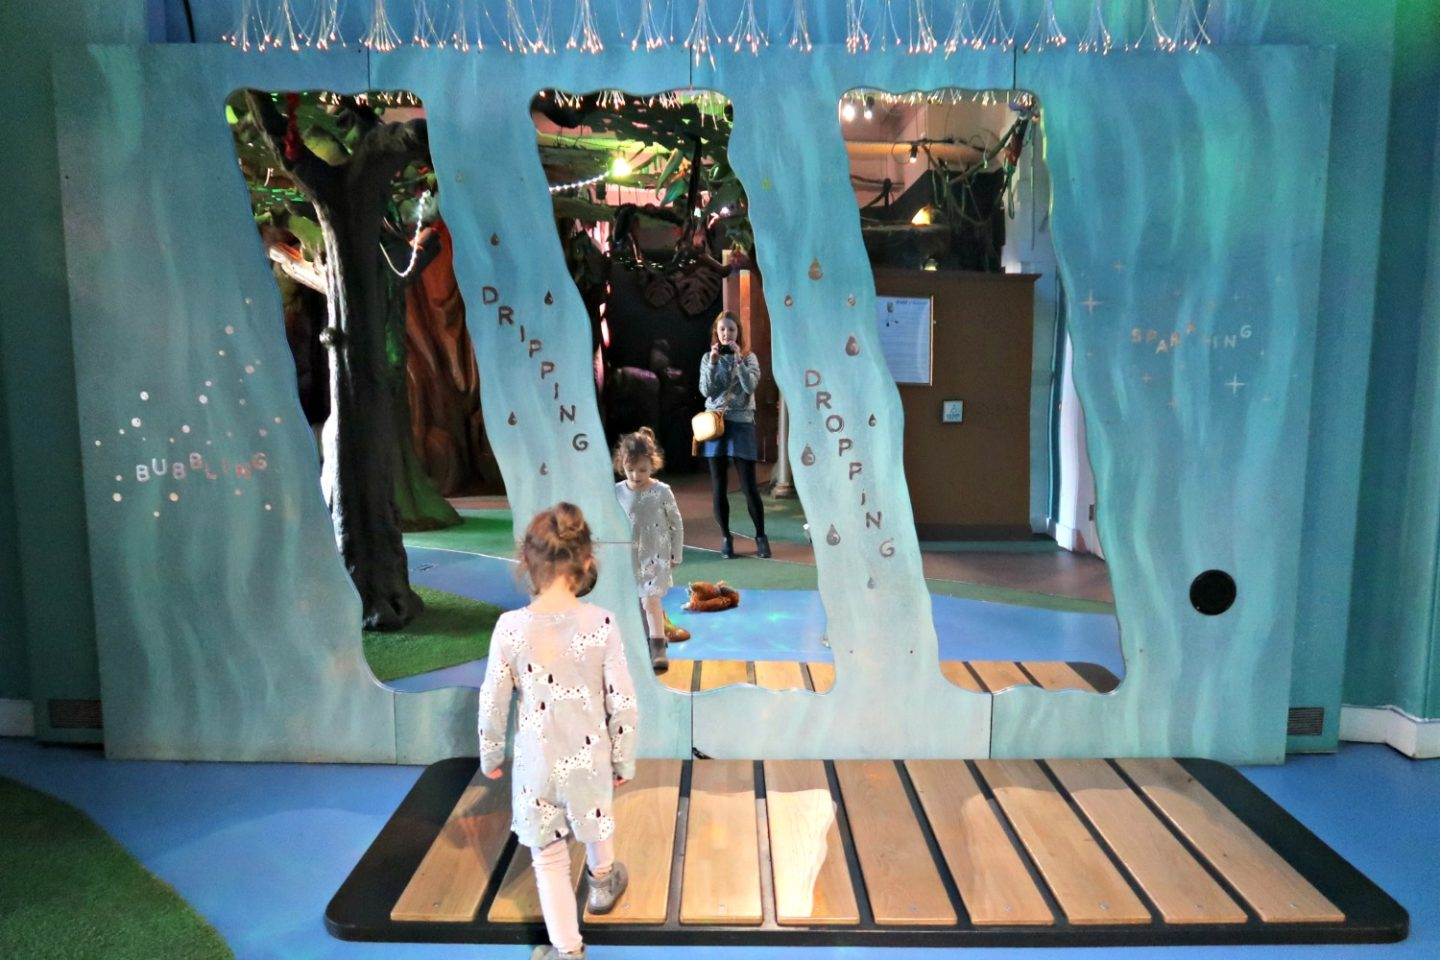 The Discover Children's Play Centre in Stratford, London